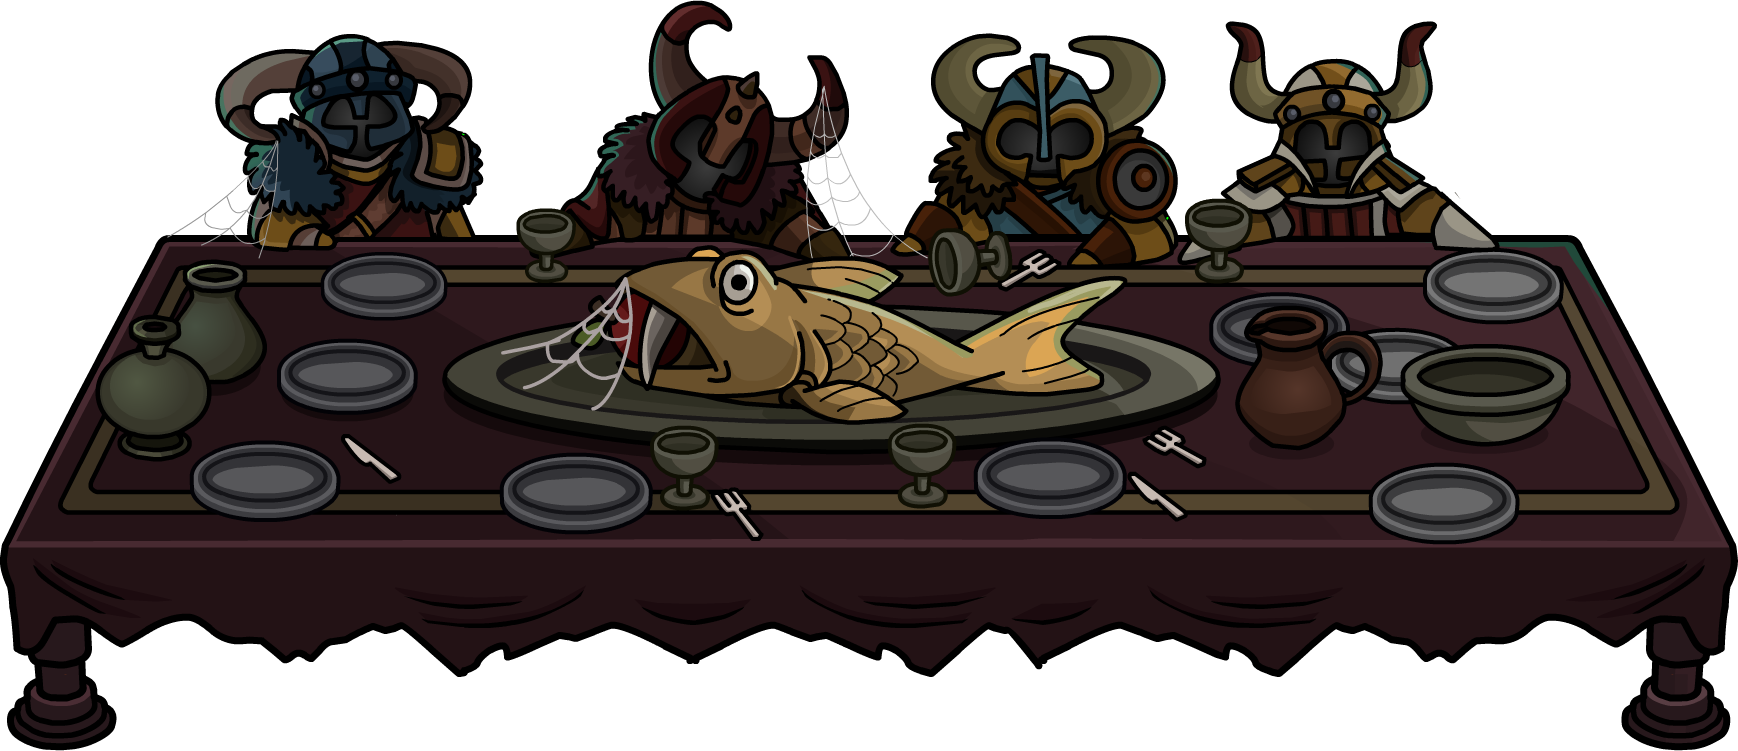 image rh quest 2012 viking hall no spoon png club penguin wiki